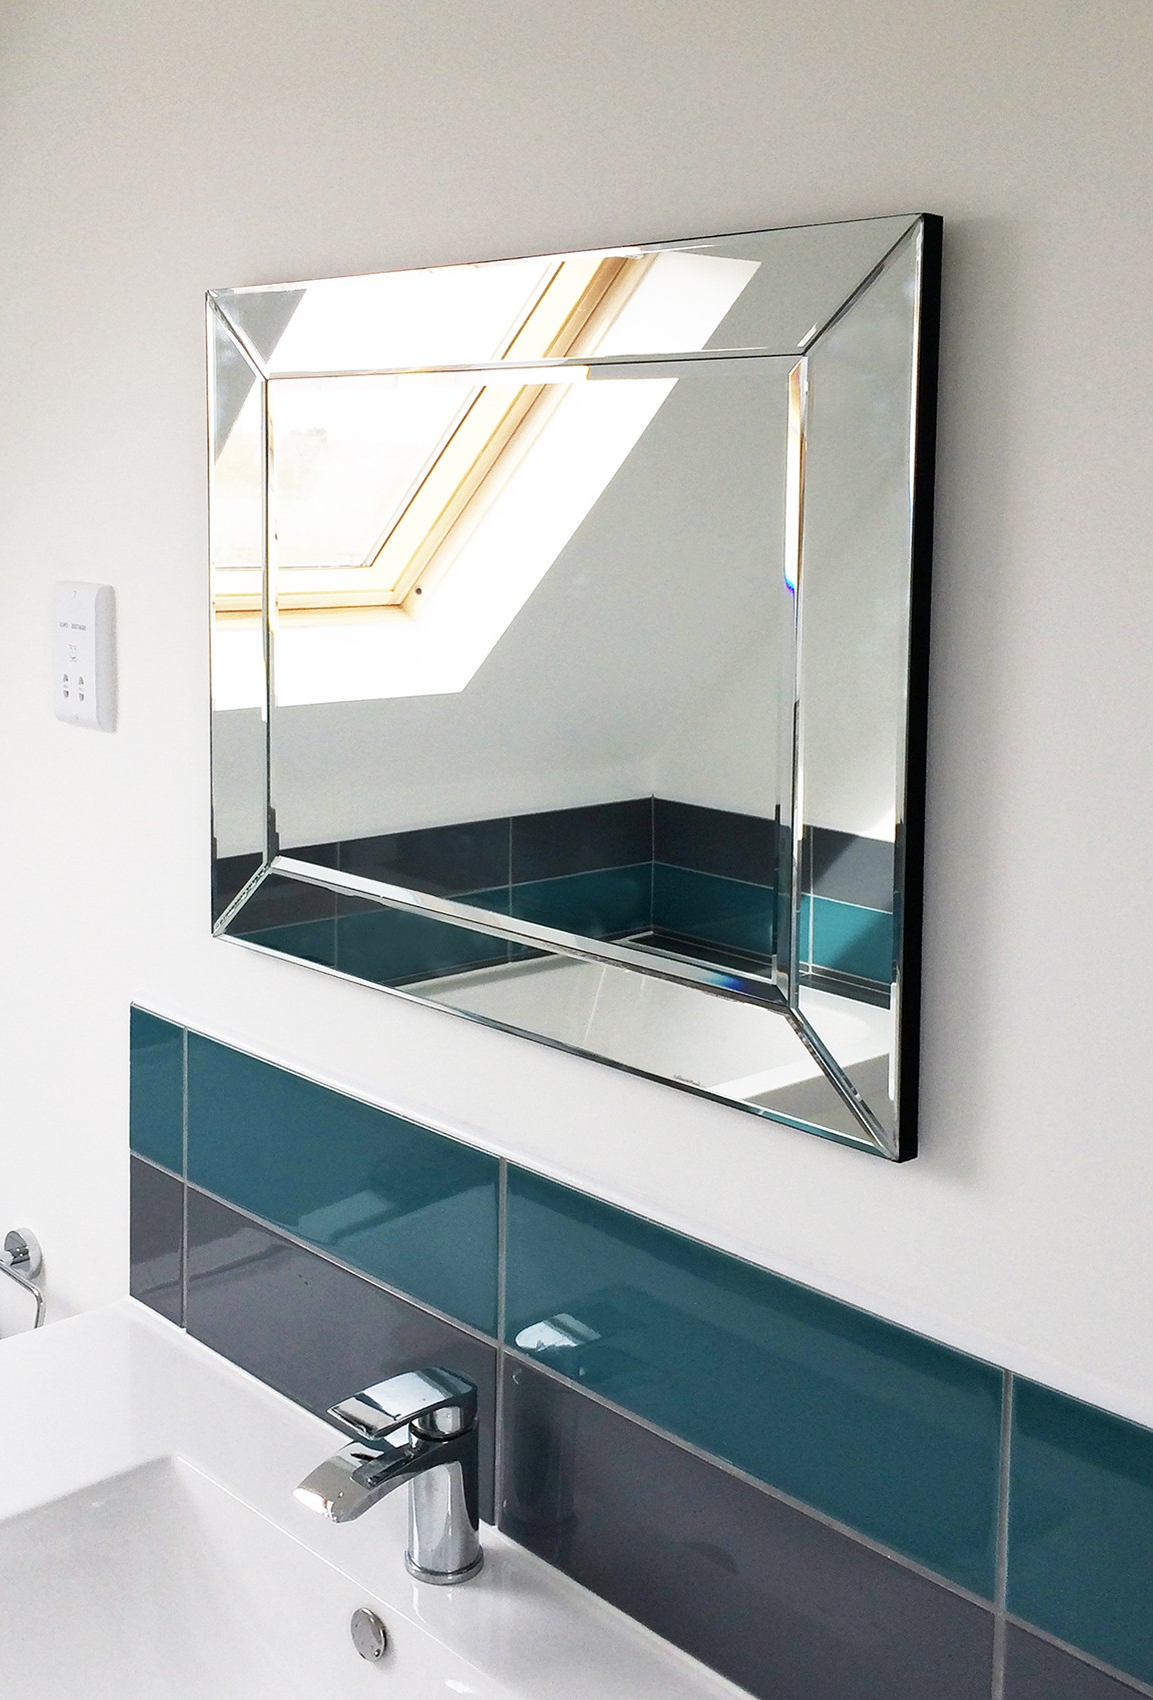 Venetian Wall Mirrors With Most Up To Date Details About Large Venetian Modern Bevelled Bathroom Wall Mirror 2ft2 X 1ft10 69 X 58cm (View 14 of 20)